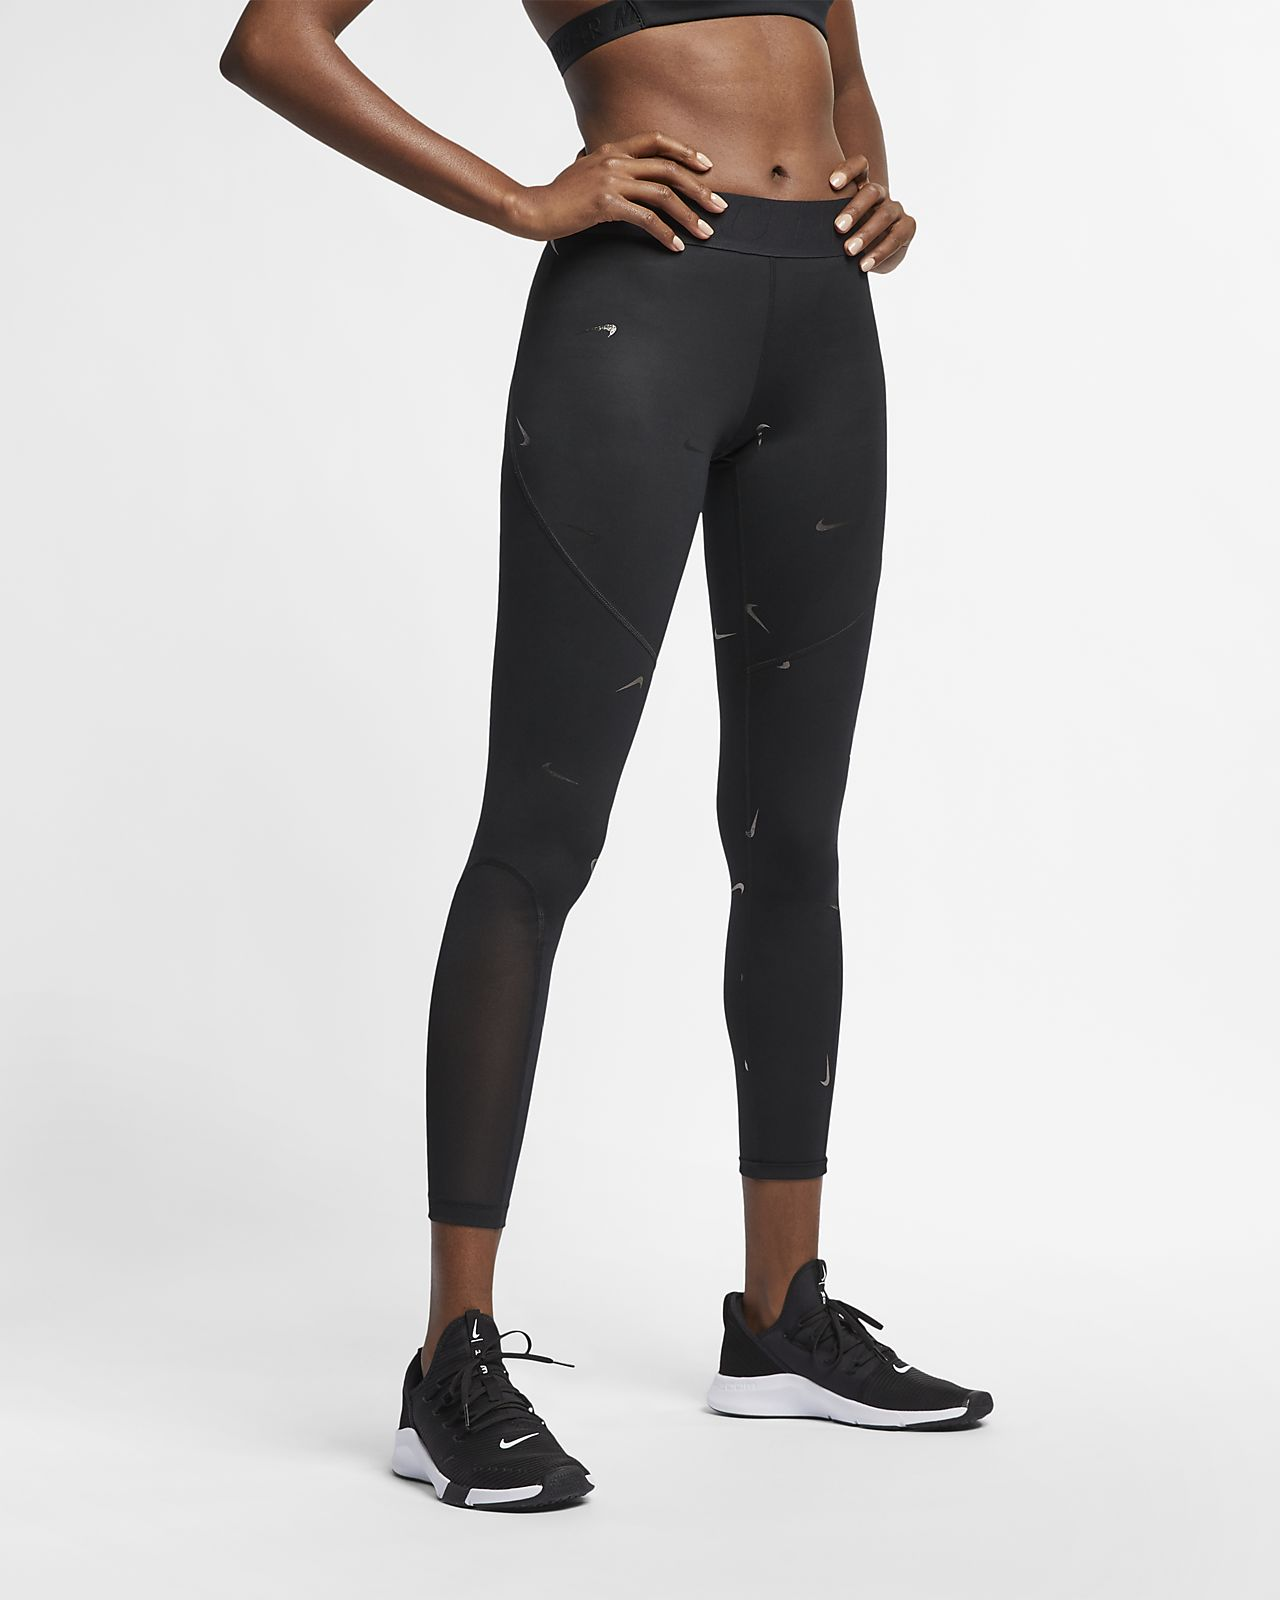 Nike Pro Women's Metallic Printed Tights